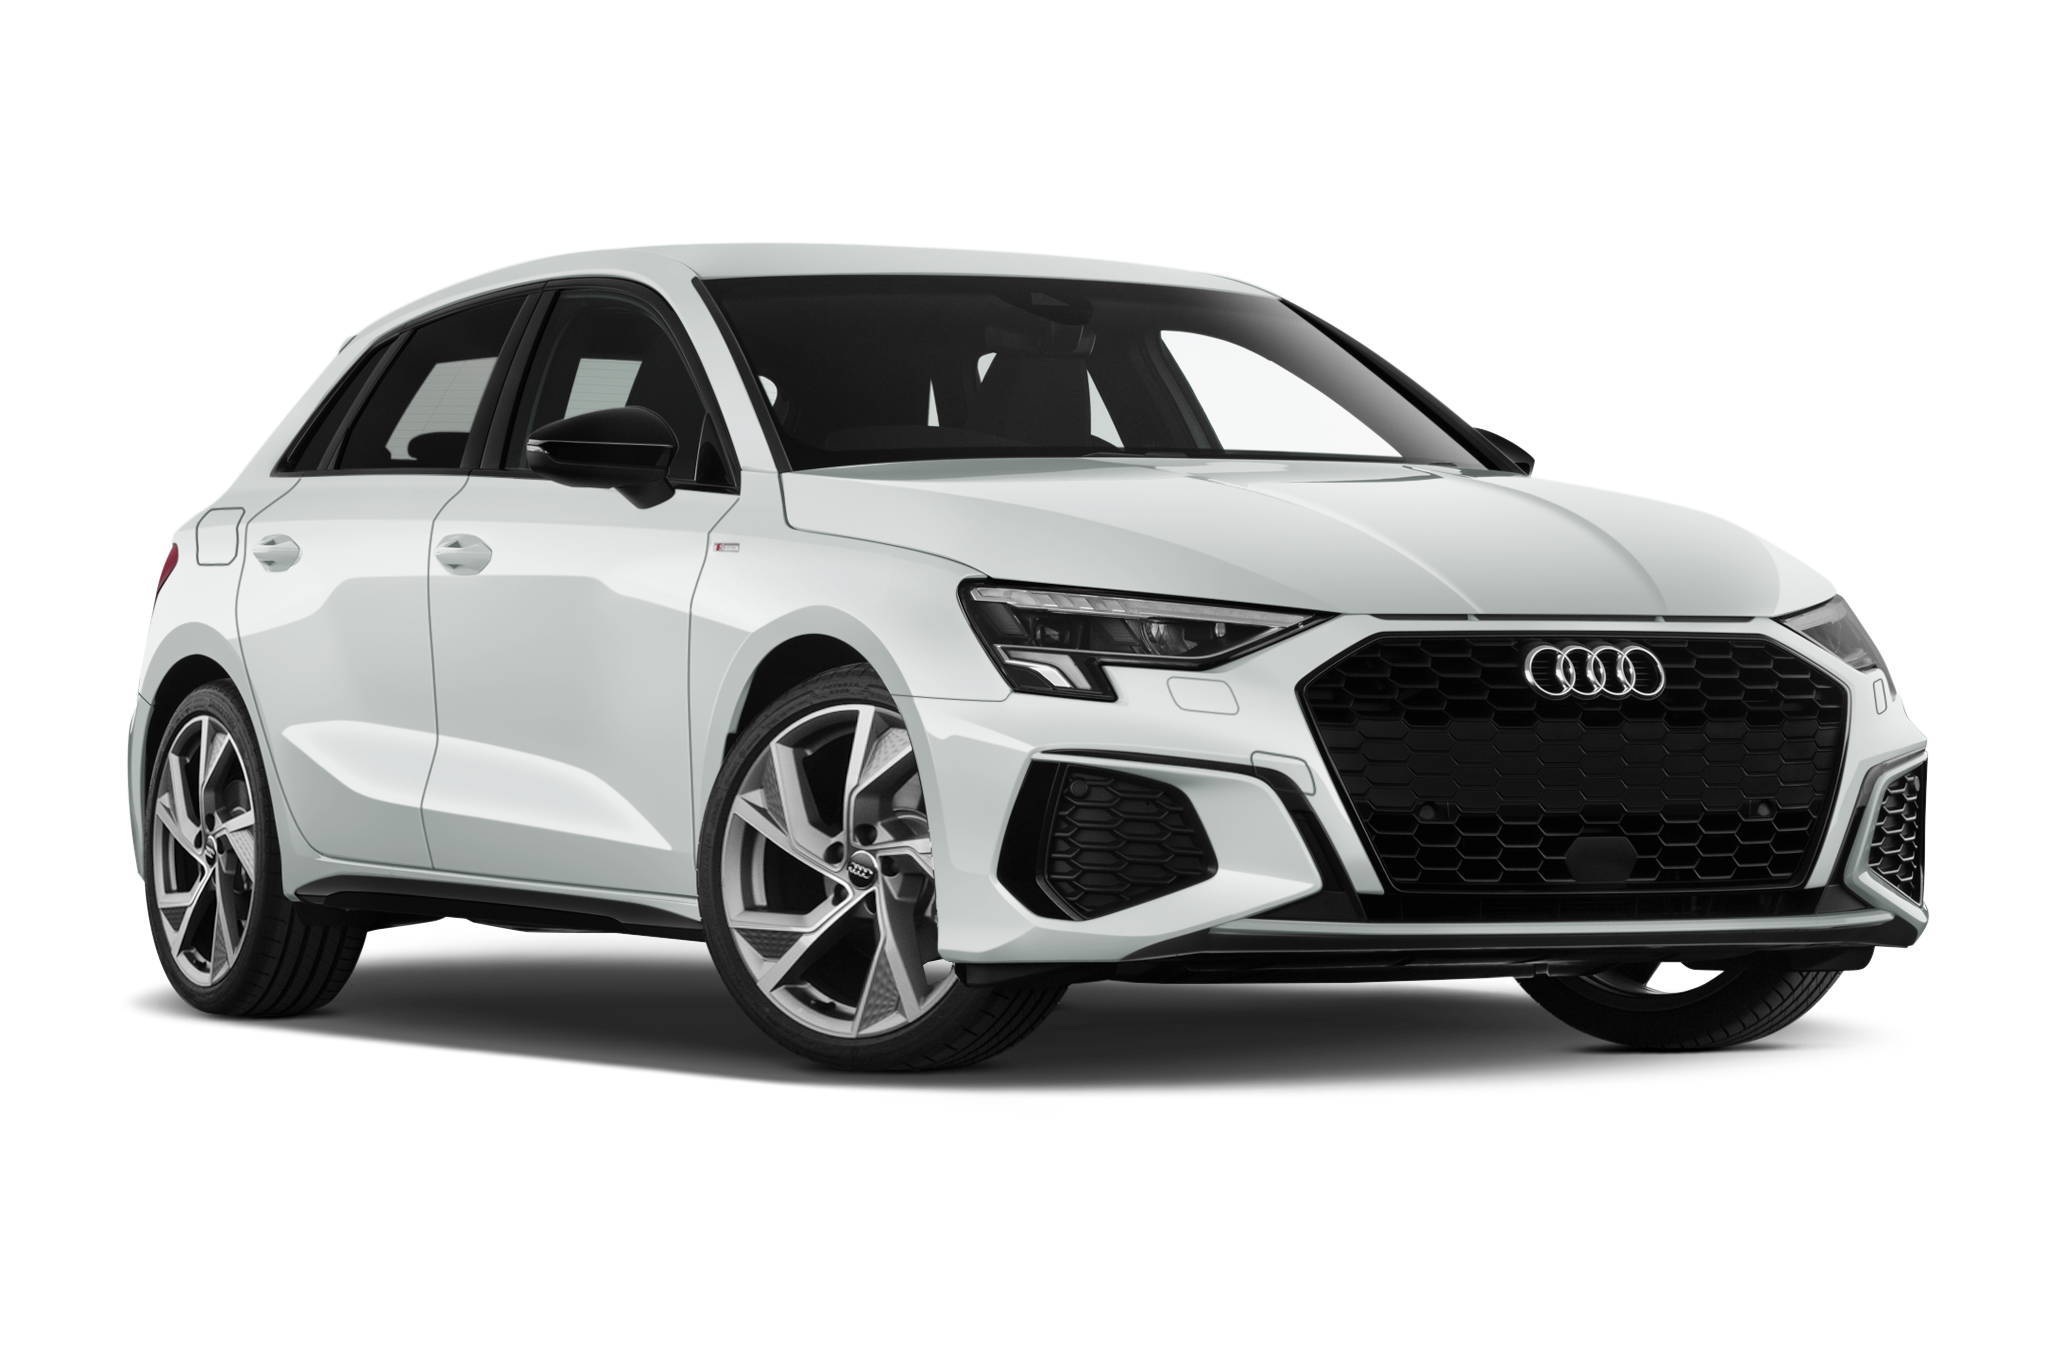 Audi A3 Sportback Lease Deals From 193pm Carwow